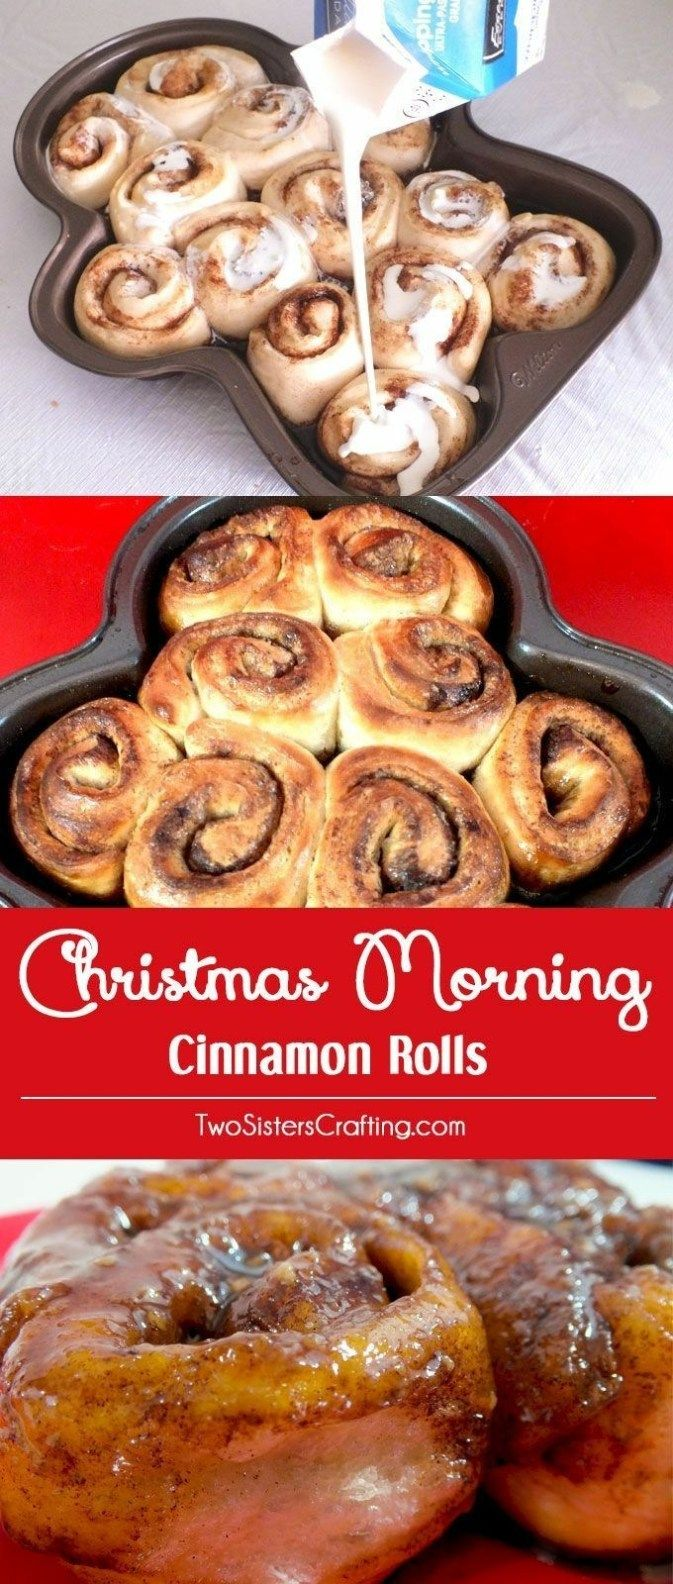 Photo of 34 Breakfast Recipes for Christmas Morning: Family Foods   Decor Dolphin